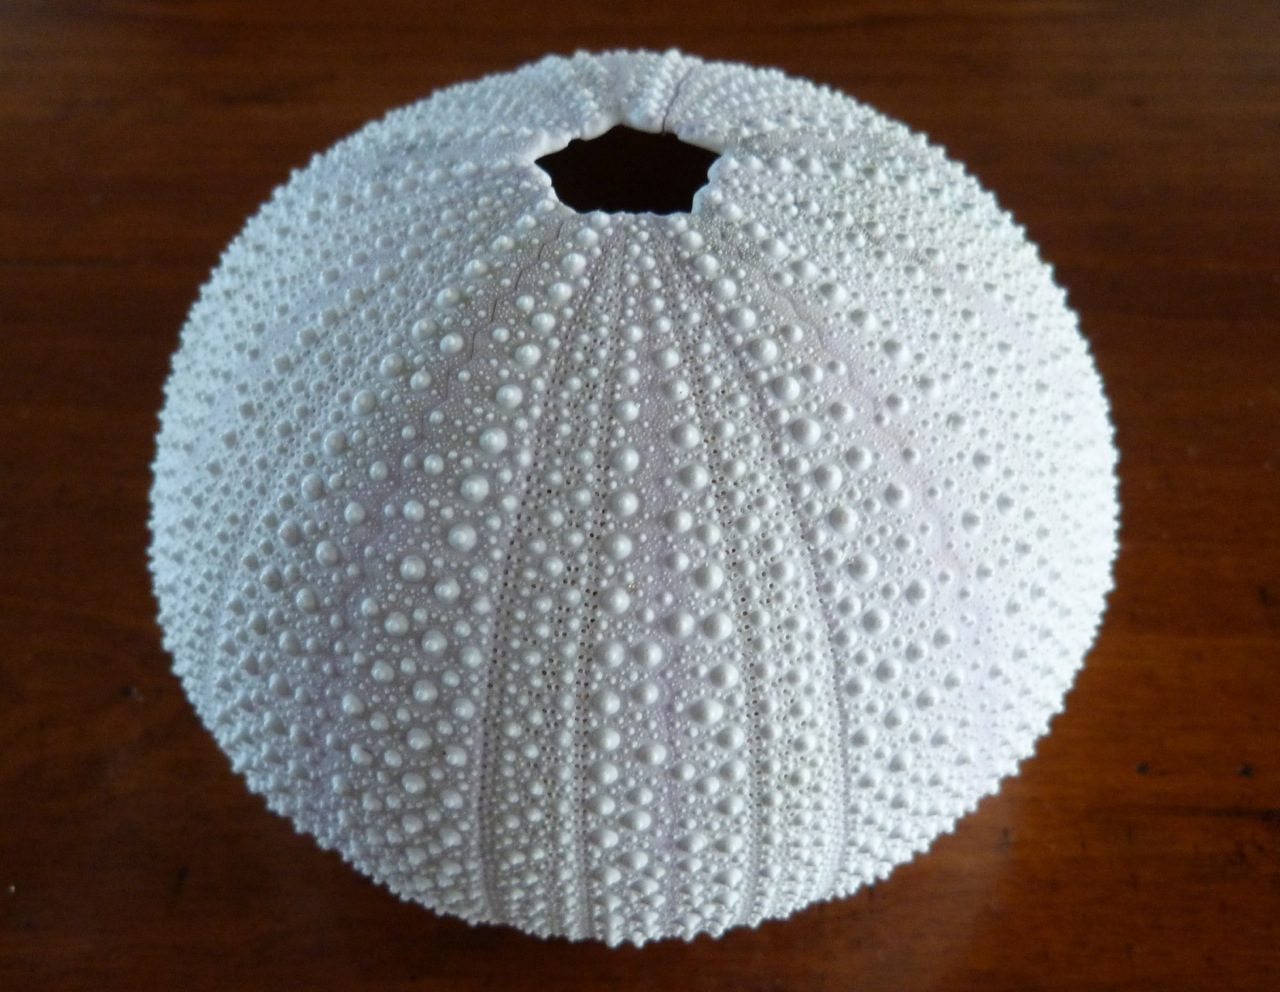 White sea urchin shell - photo#4